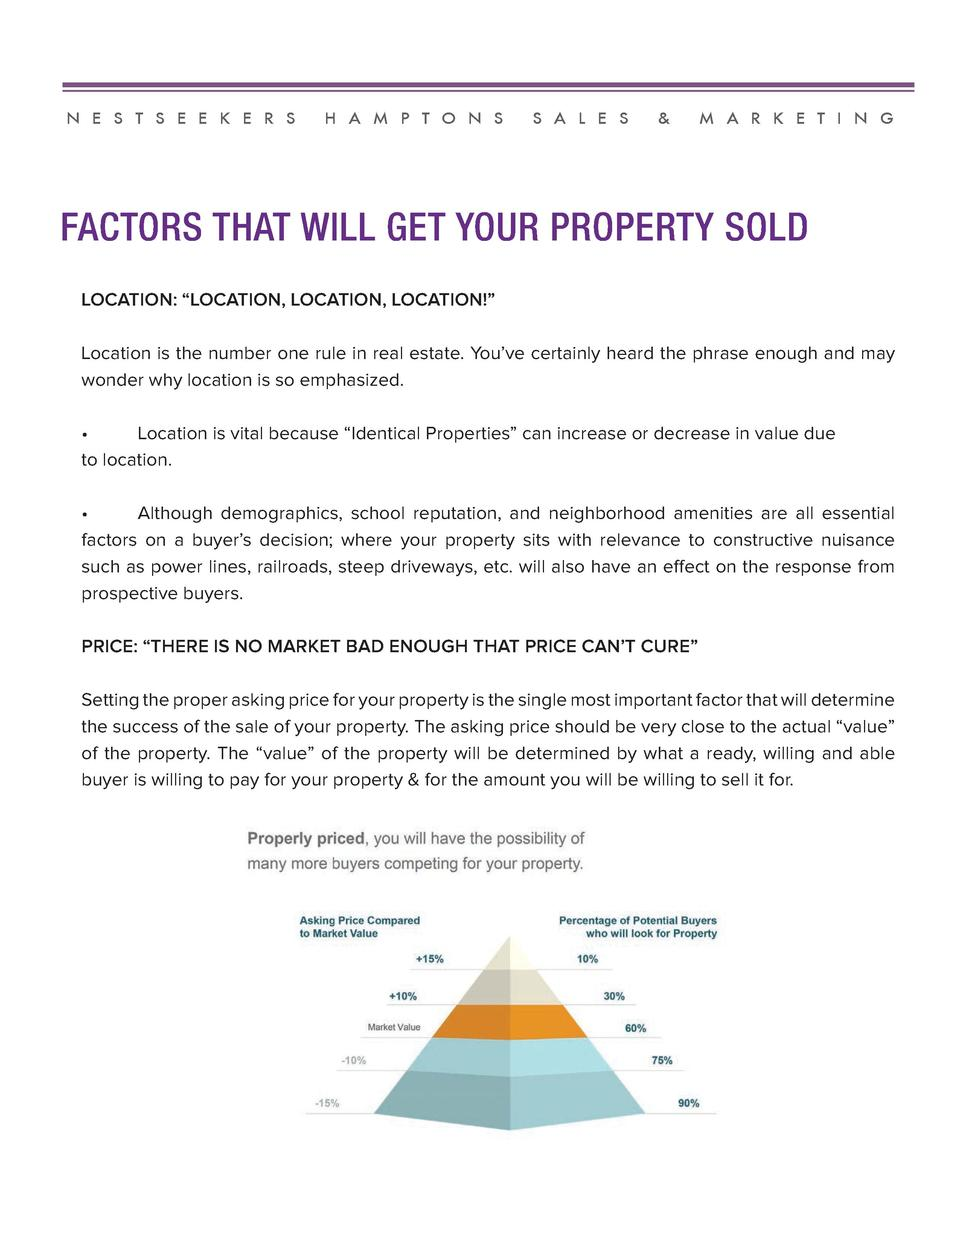 N E S T S E E K E R S  H A M P T O N S  S A L E S     M A R K E T I N G  FACTORS THAT WILL GET YOUR PROPERTY SOLD LOCATION...